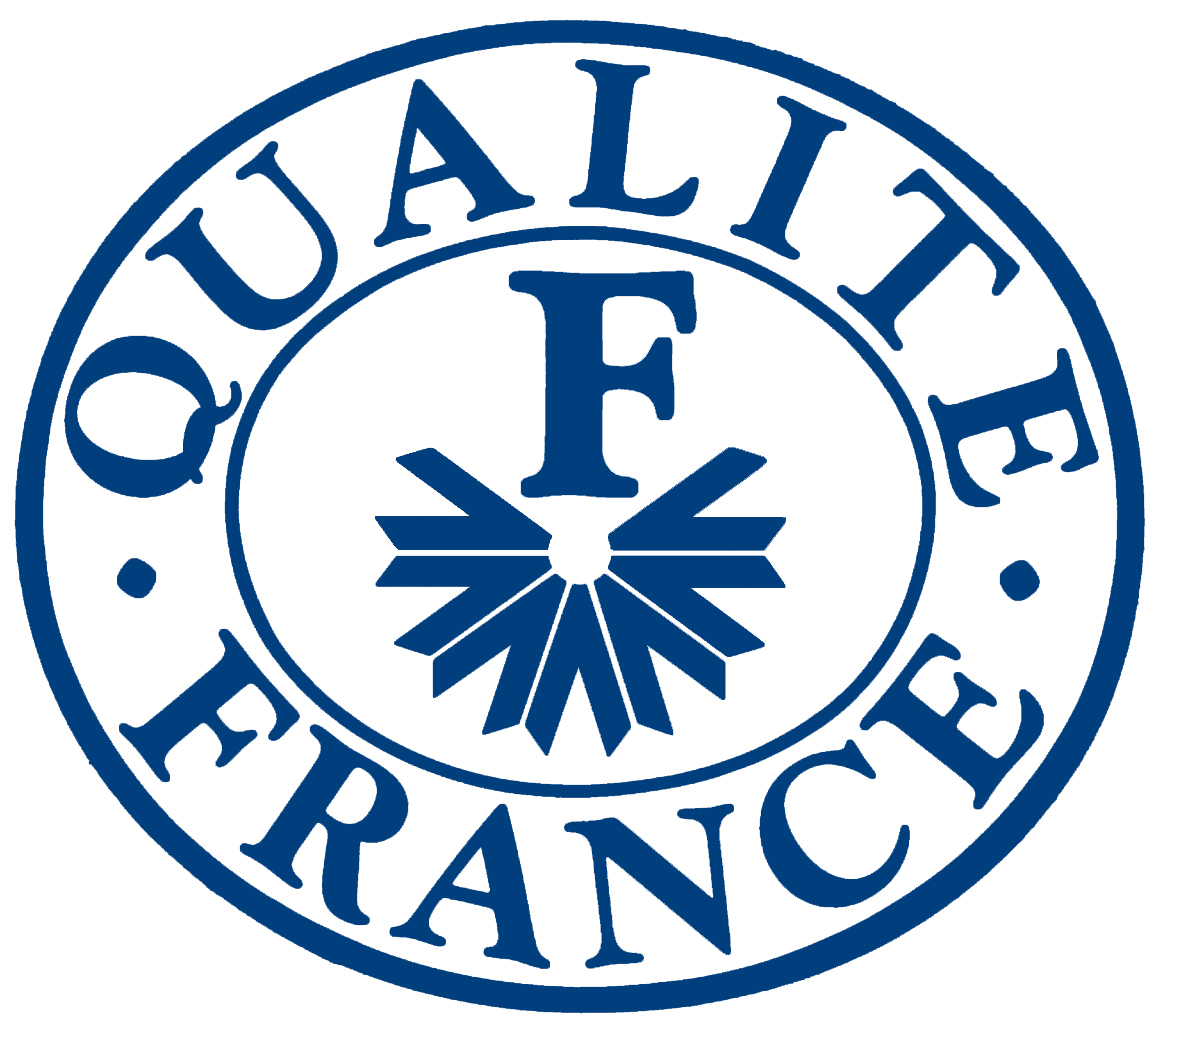 logo qualité france.jpg